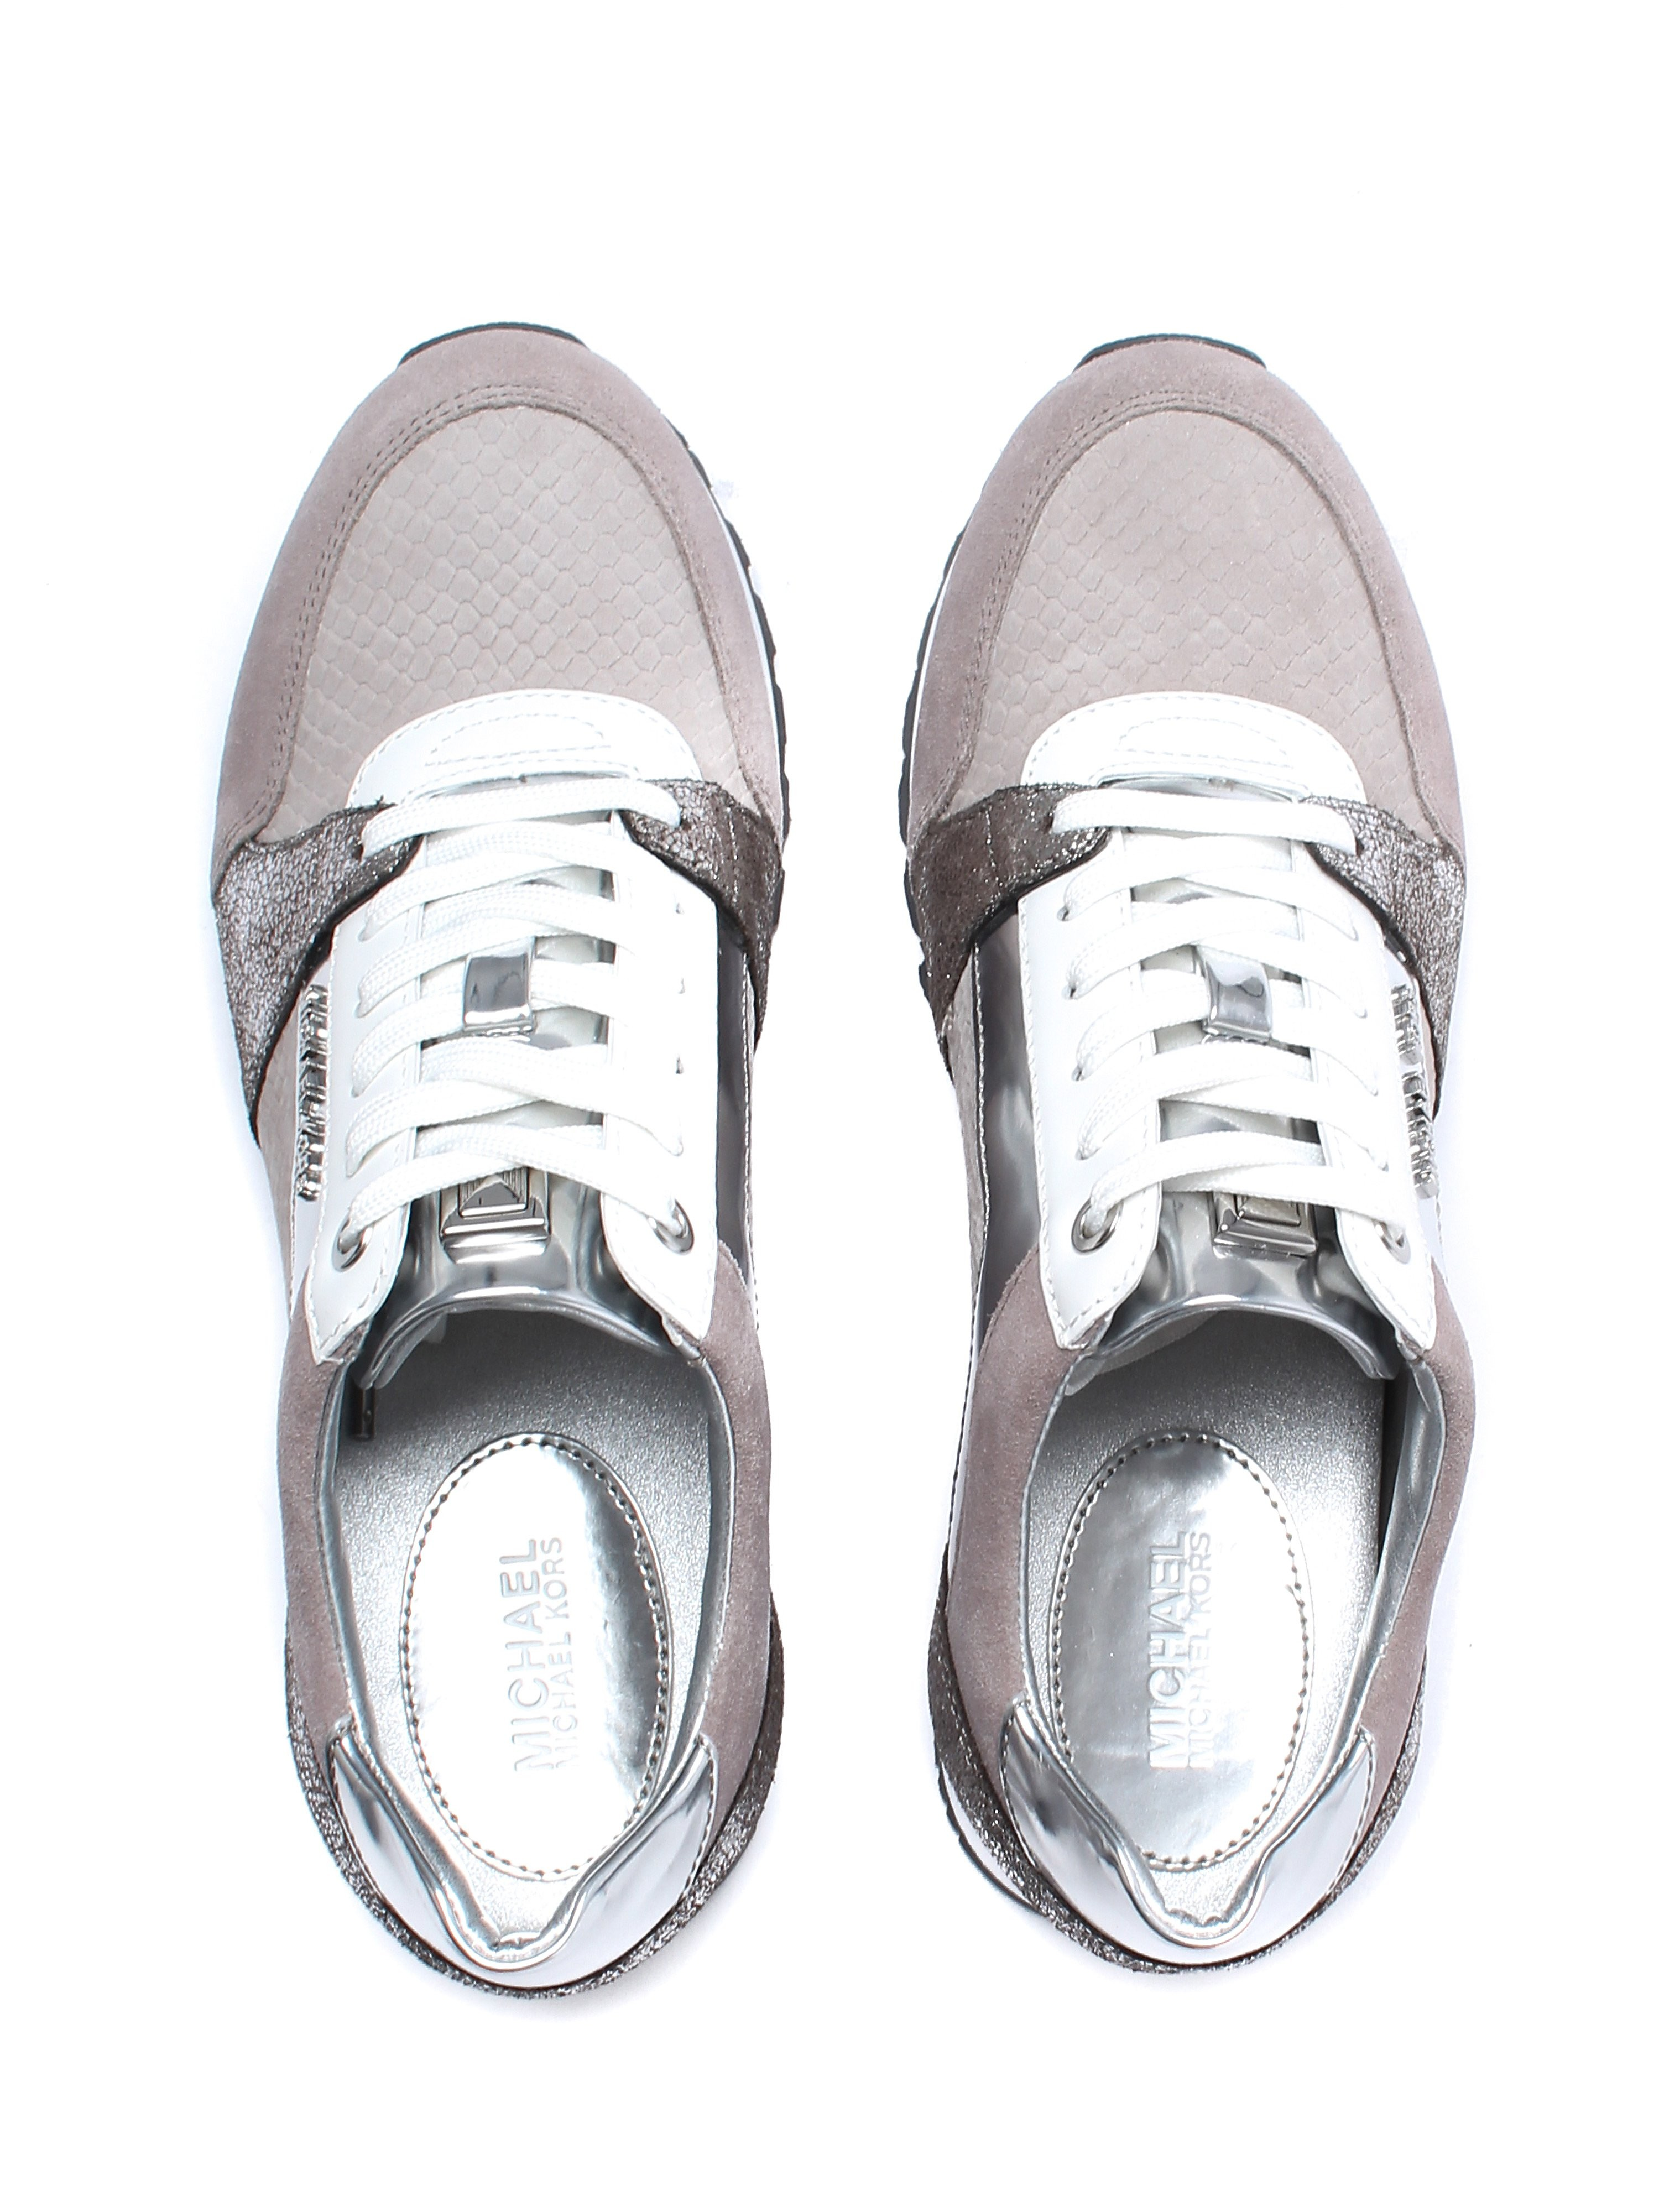 Michael Michael Kors Women's Billie Trainers - Pearl Grey/Silver